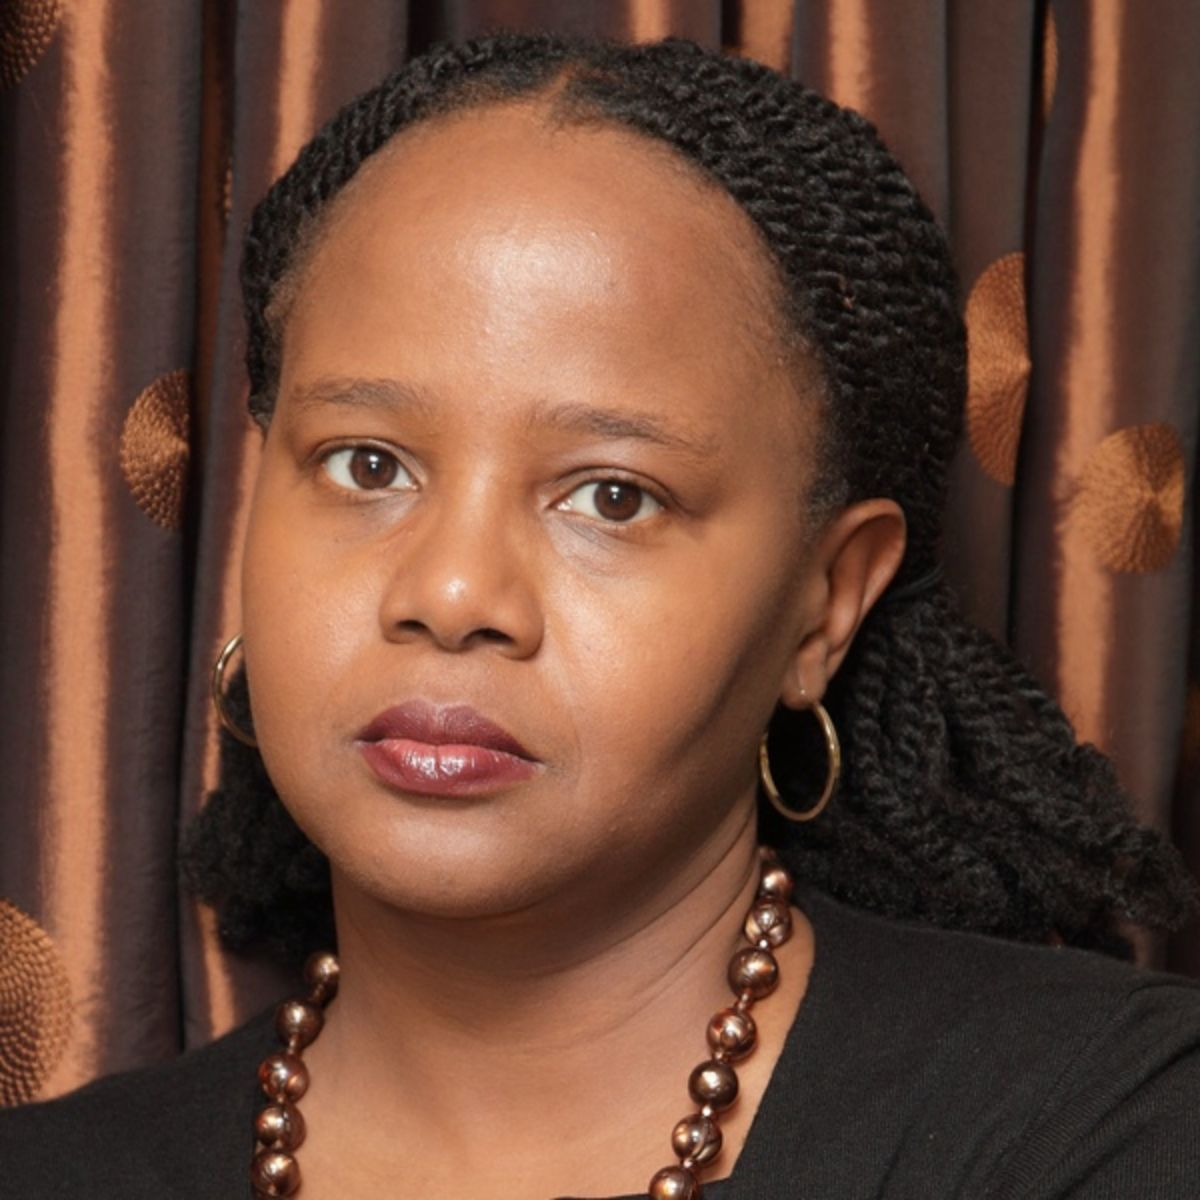 Argument Essay About Abortion Breath Eyes Memory By Edwige Danticat Essay Examples Essays And Criticism  On Edwidge Danticats Breath Eyes Memory  Critical Essays Biology Essays also Easy Research Essay Topics Find Out More About Acclaimed Haitian Writer Edwidge Danticatauthor  Satire Essays On School